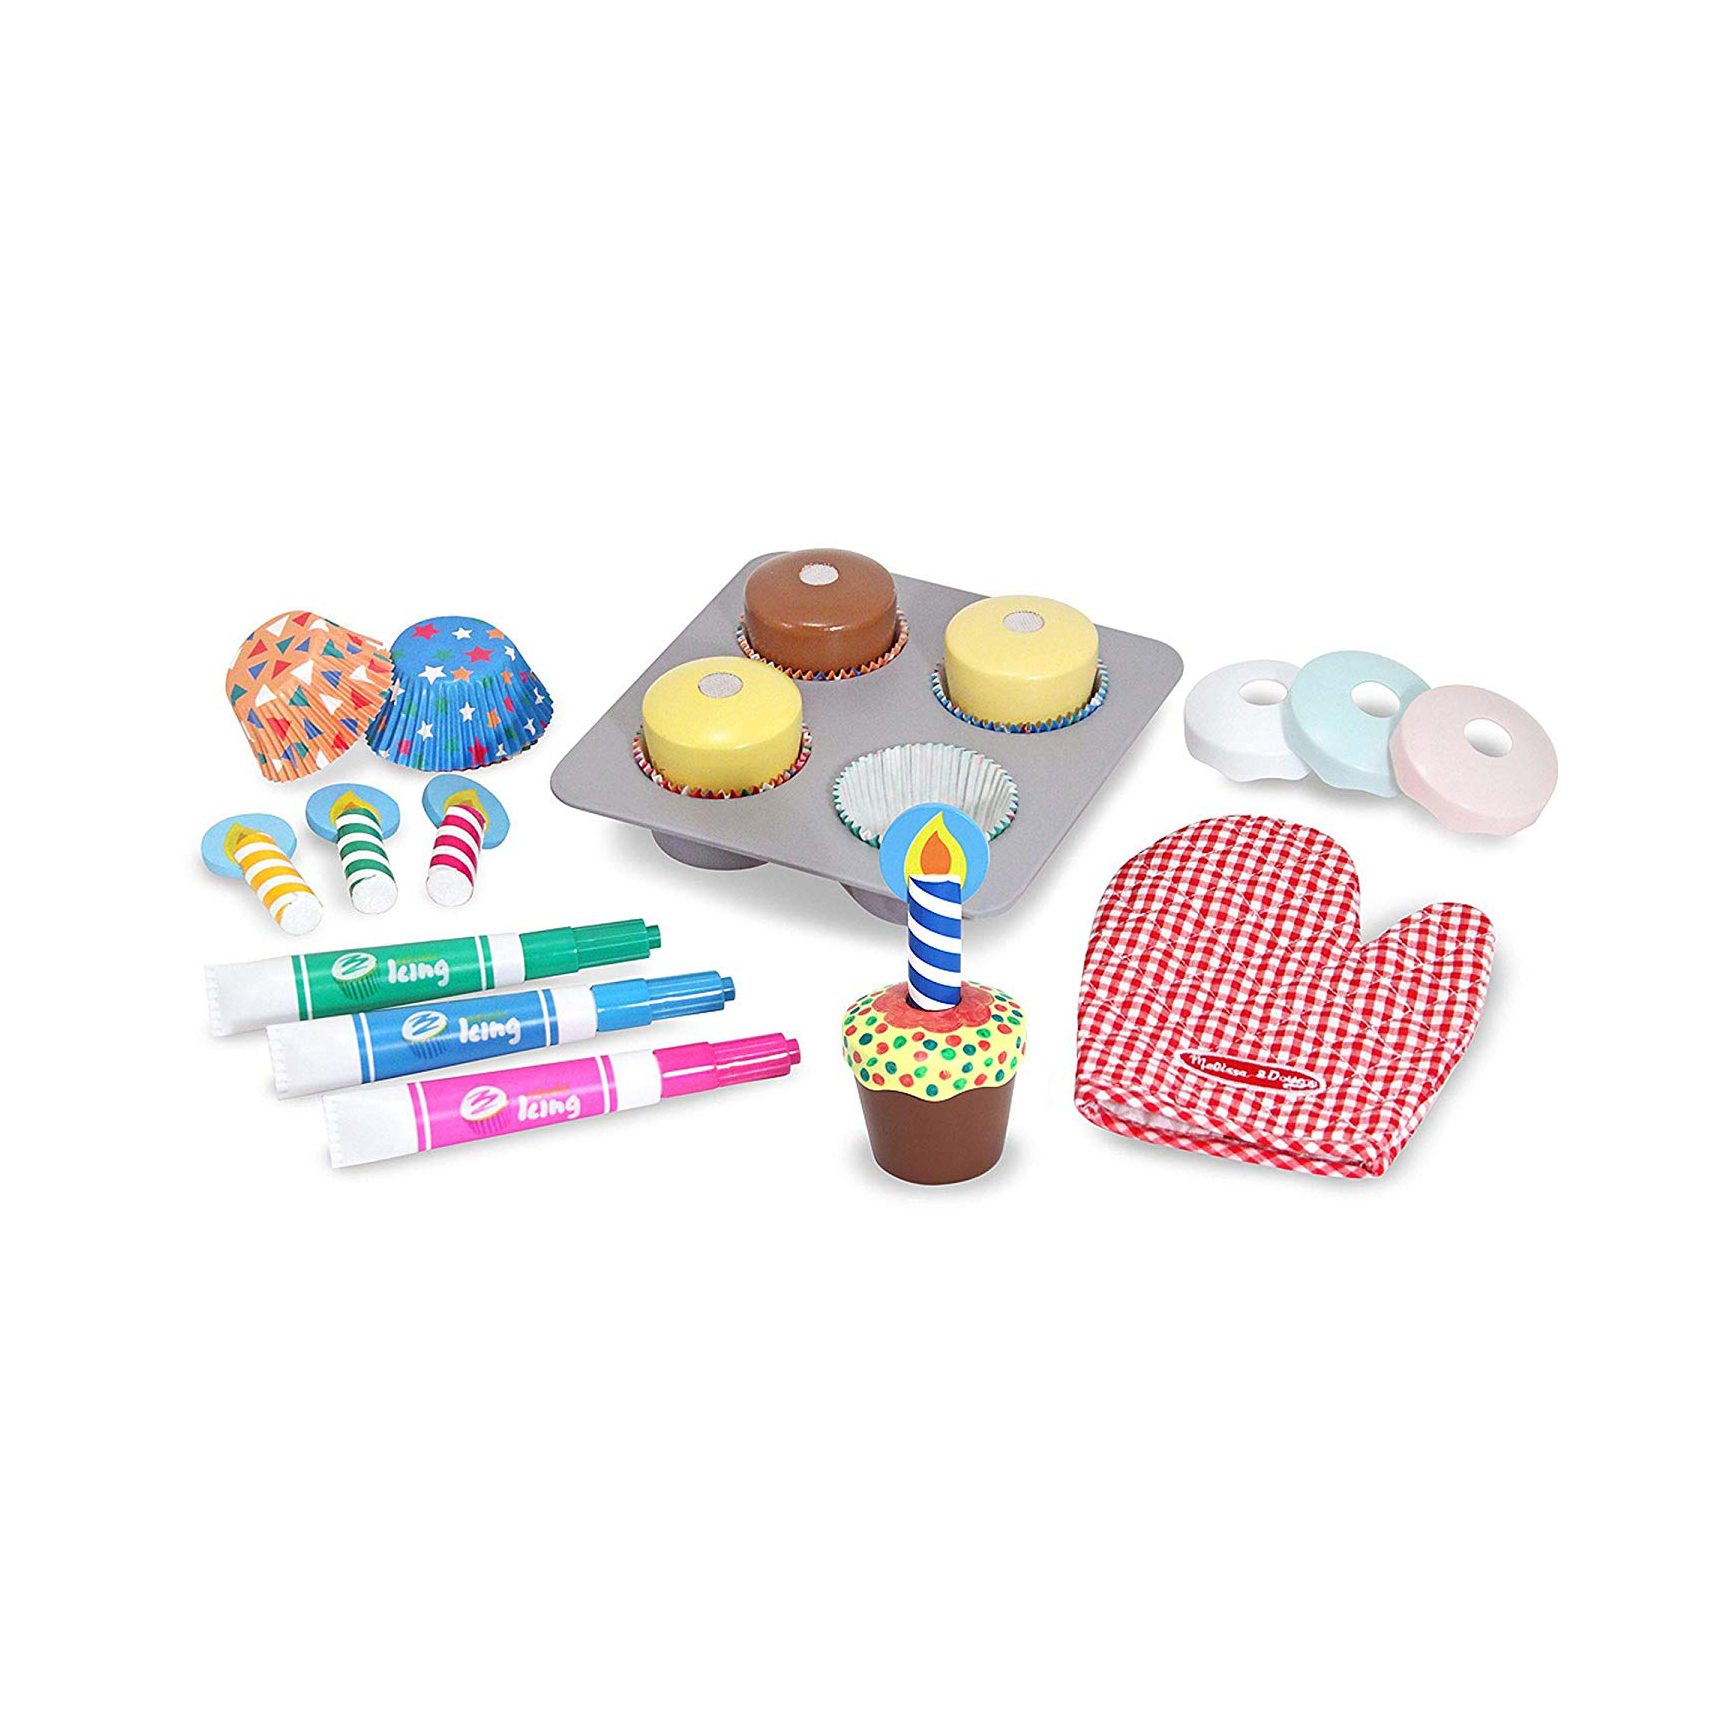 Cute Valentine's Day gifts for kids - Melissa & Doug Bake & Decorate Cupcake Set